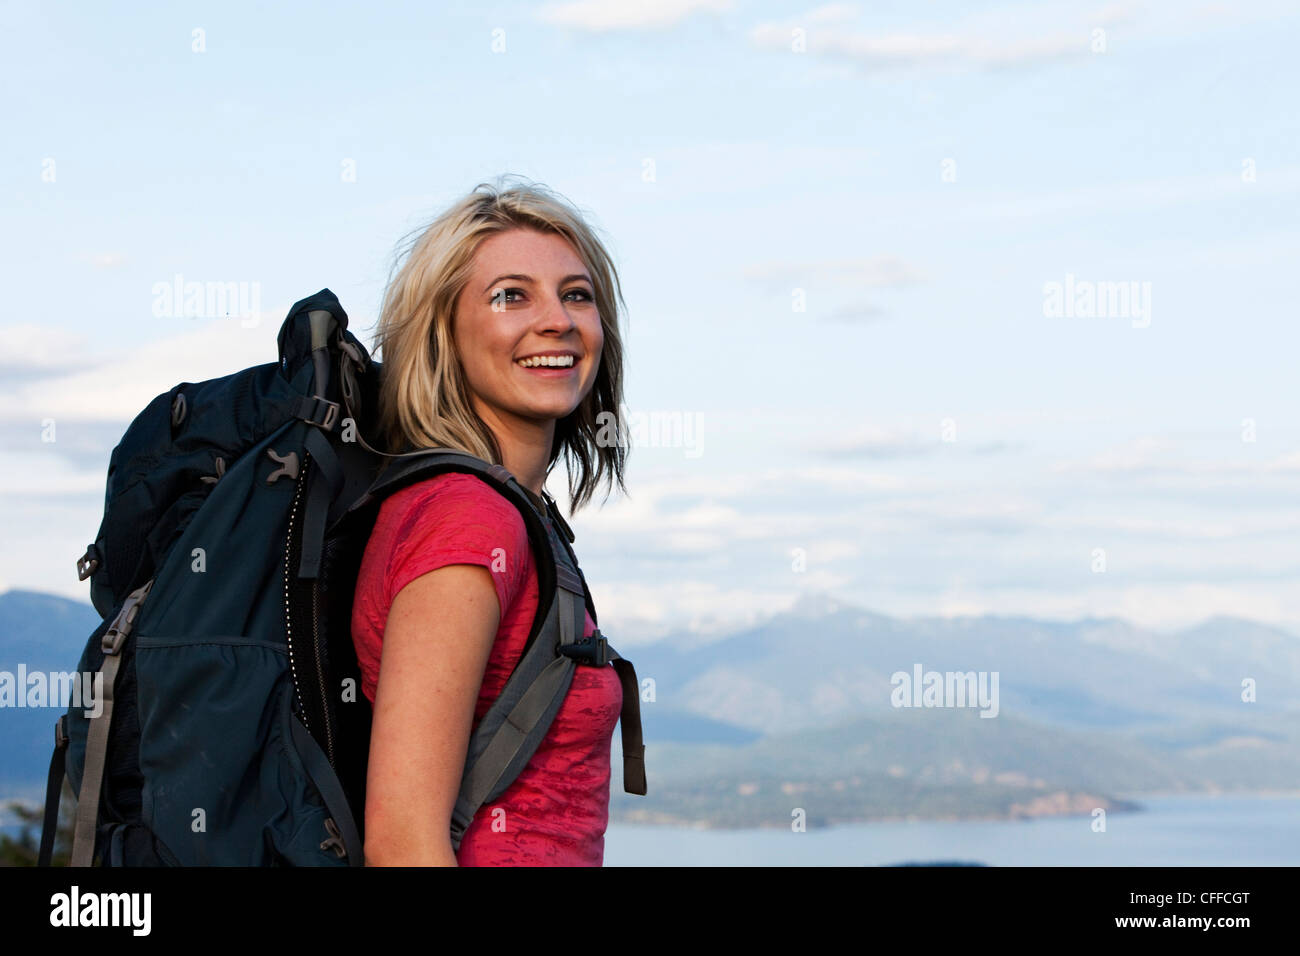 A athletic woman smiling on a backpacking trip in Idaho. - Stock Image